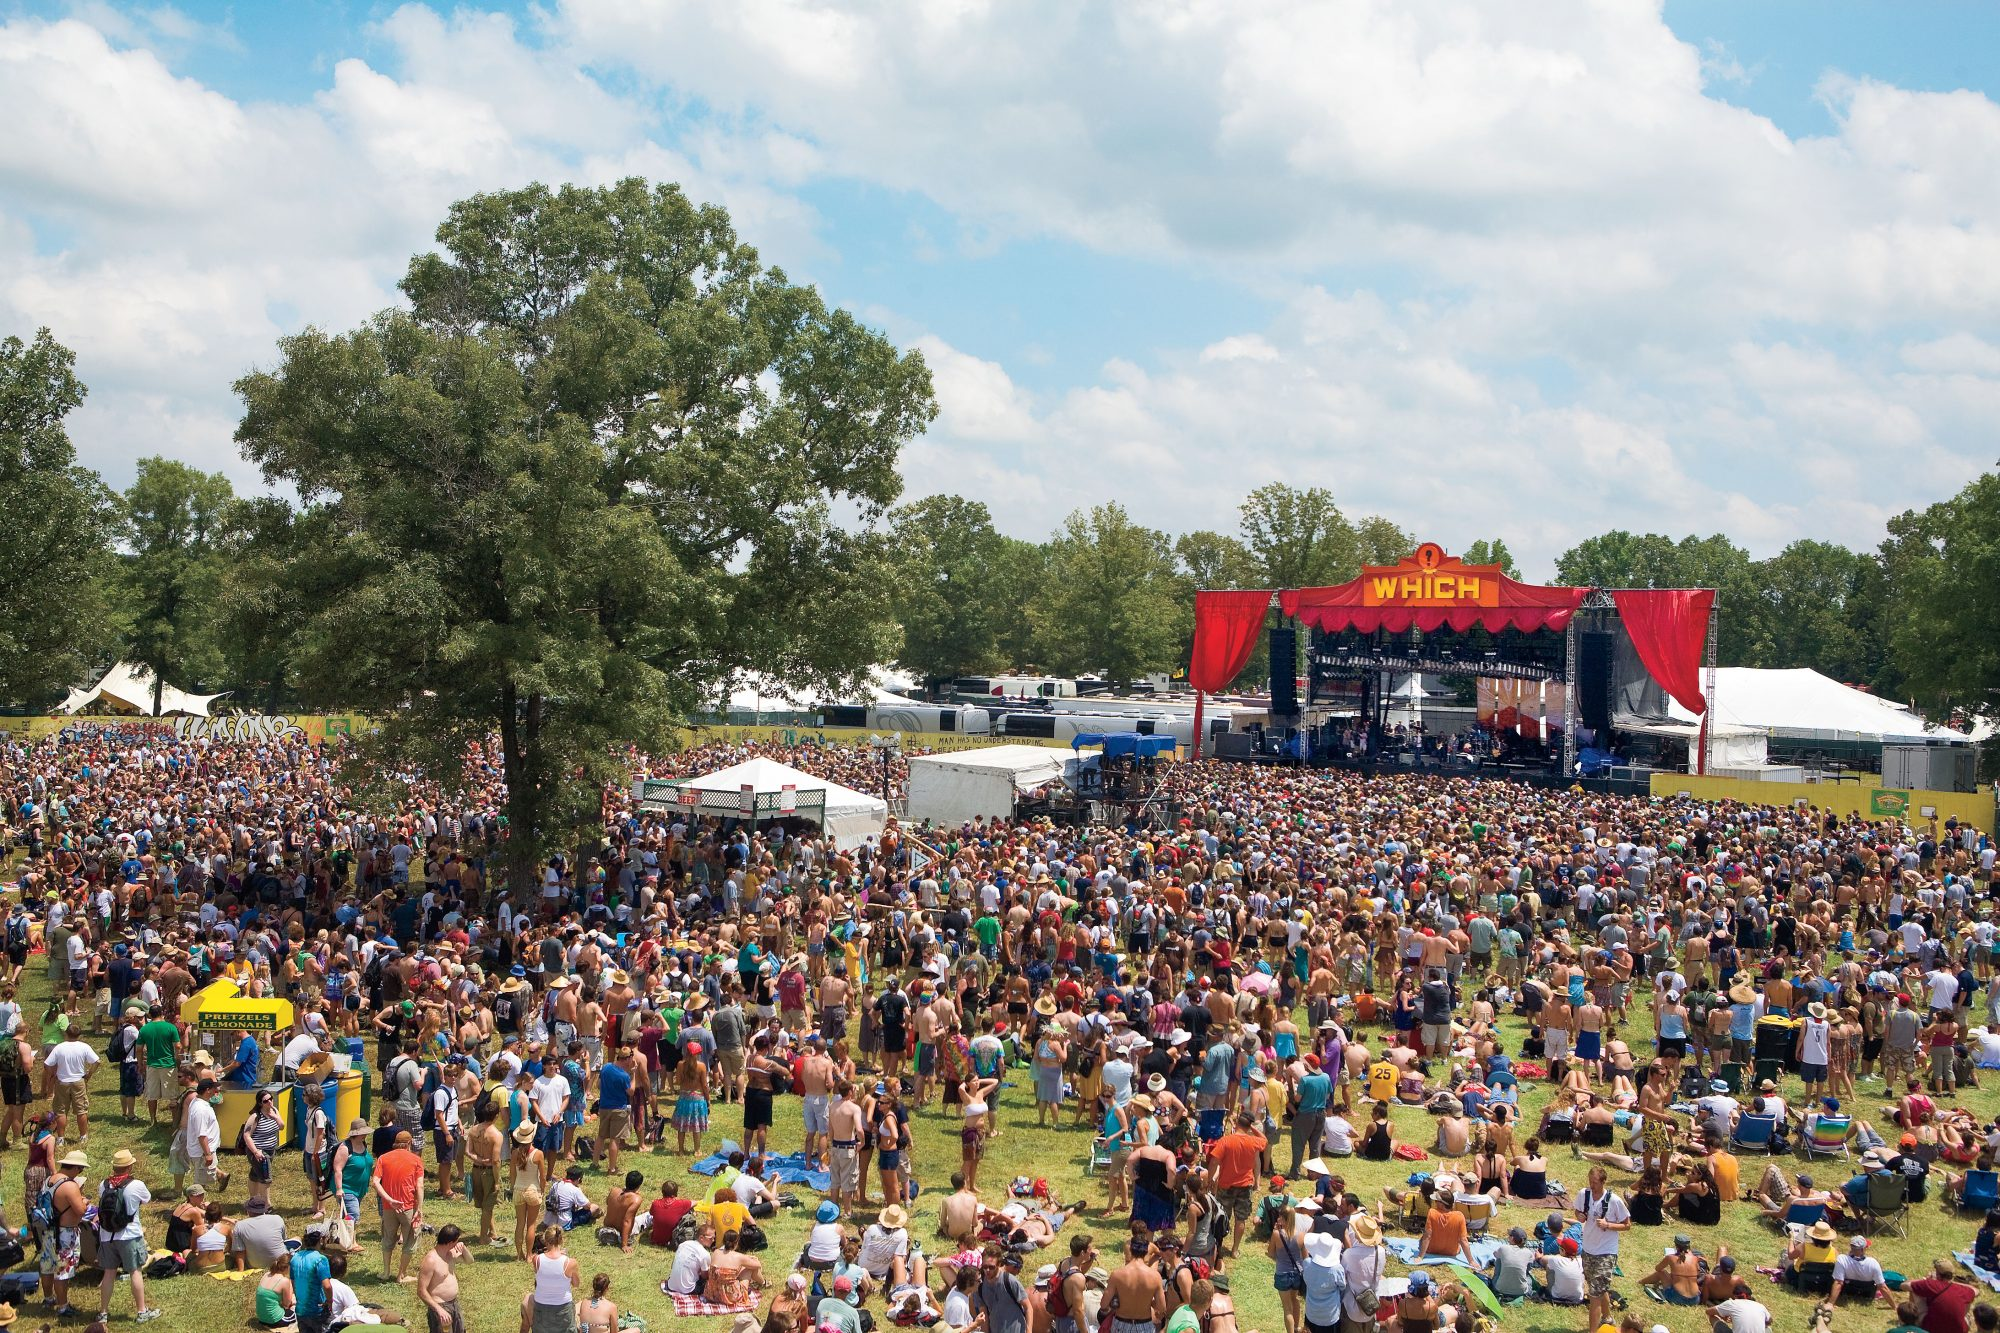 Guide to Bonnaroo Music Festival, Manchester, Tennessee